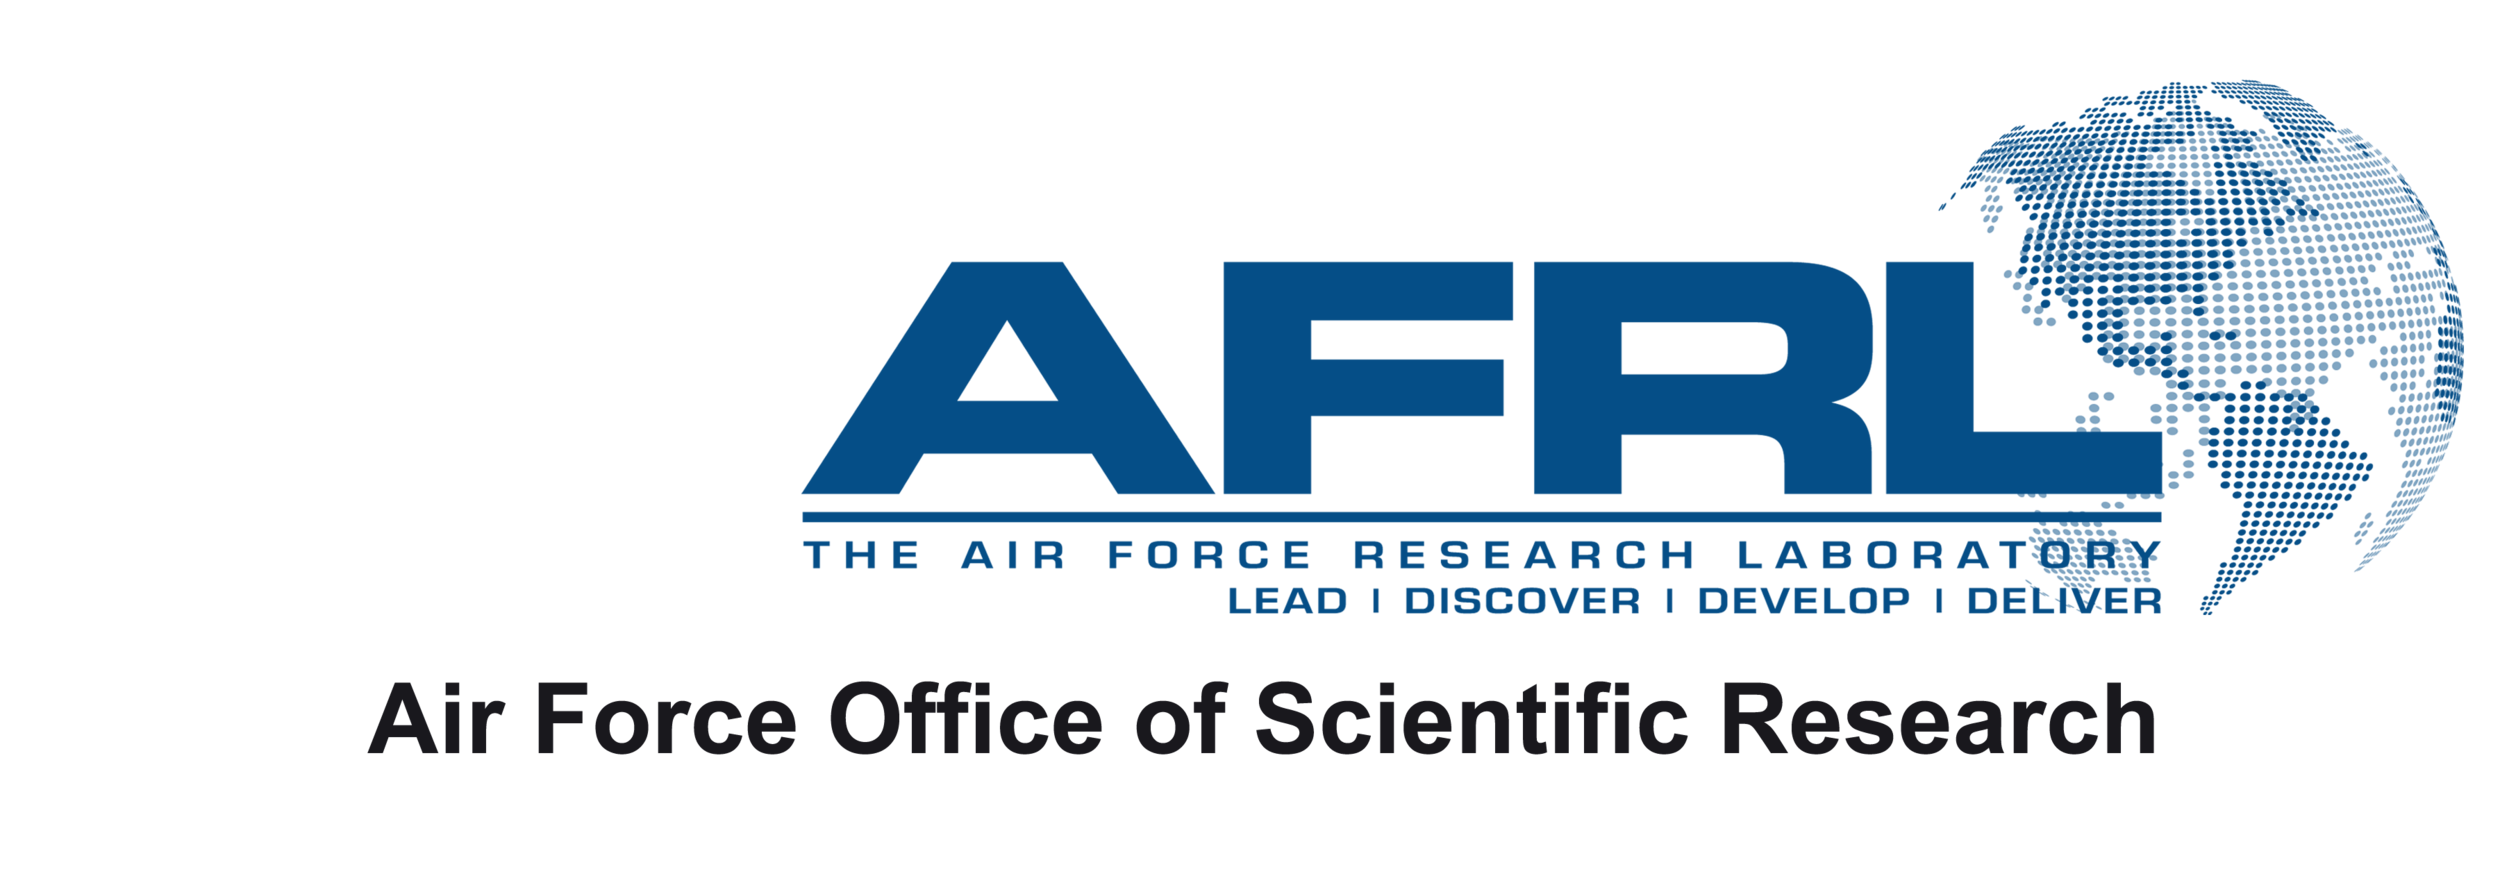 AFRL_onecolorblue_Basic Research logo(1).png